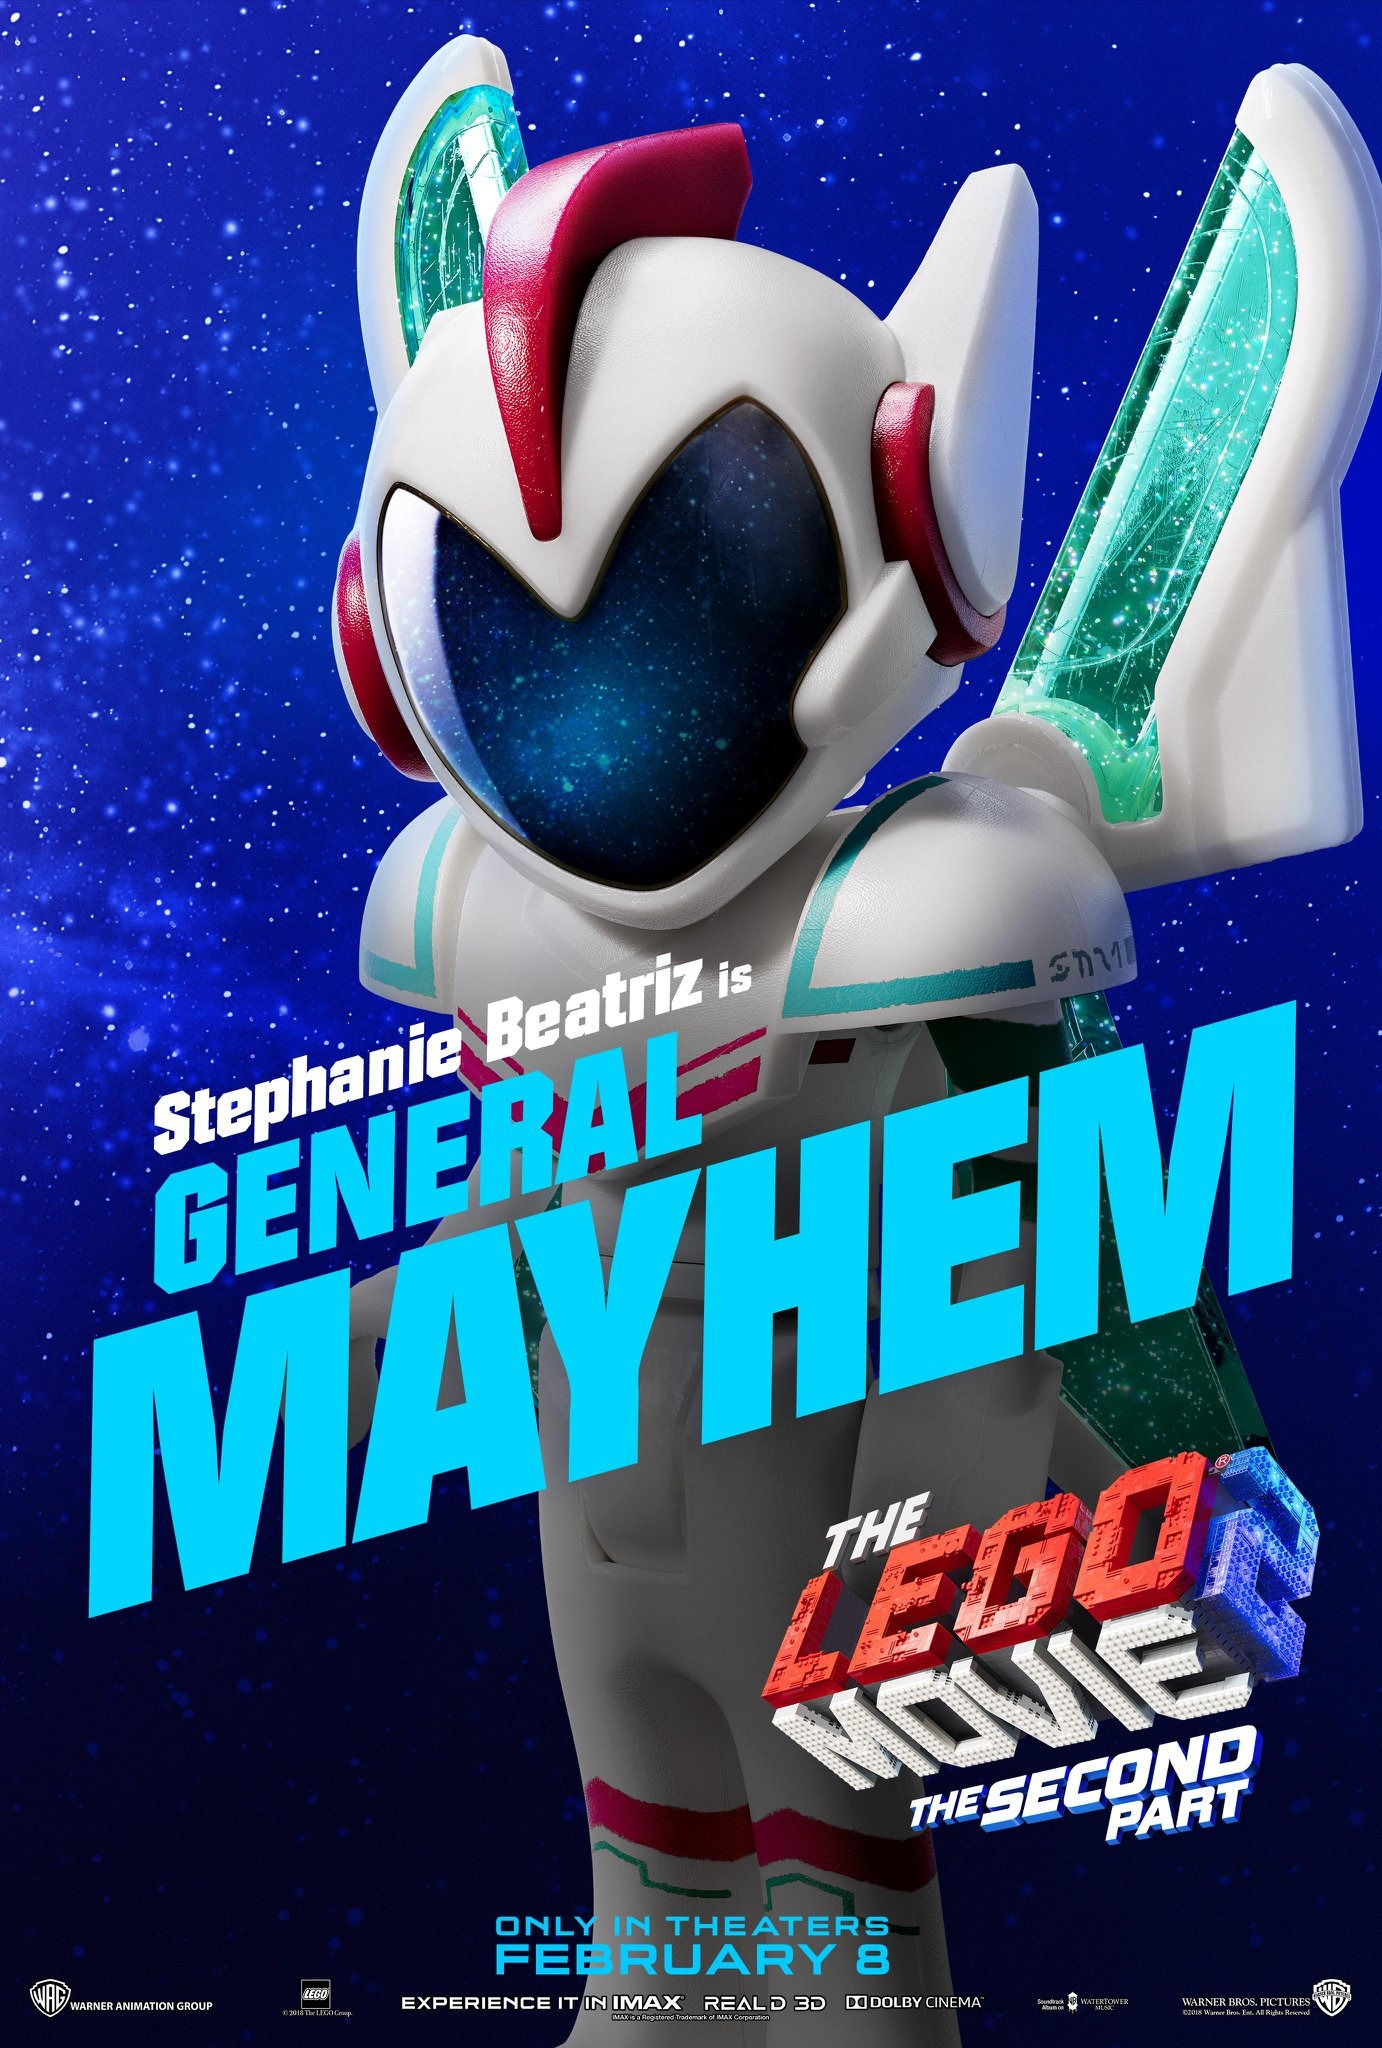 Stephanie Beatriz is General Mayhem The Lego Movie 2 The Second Part Character Posters